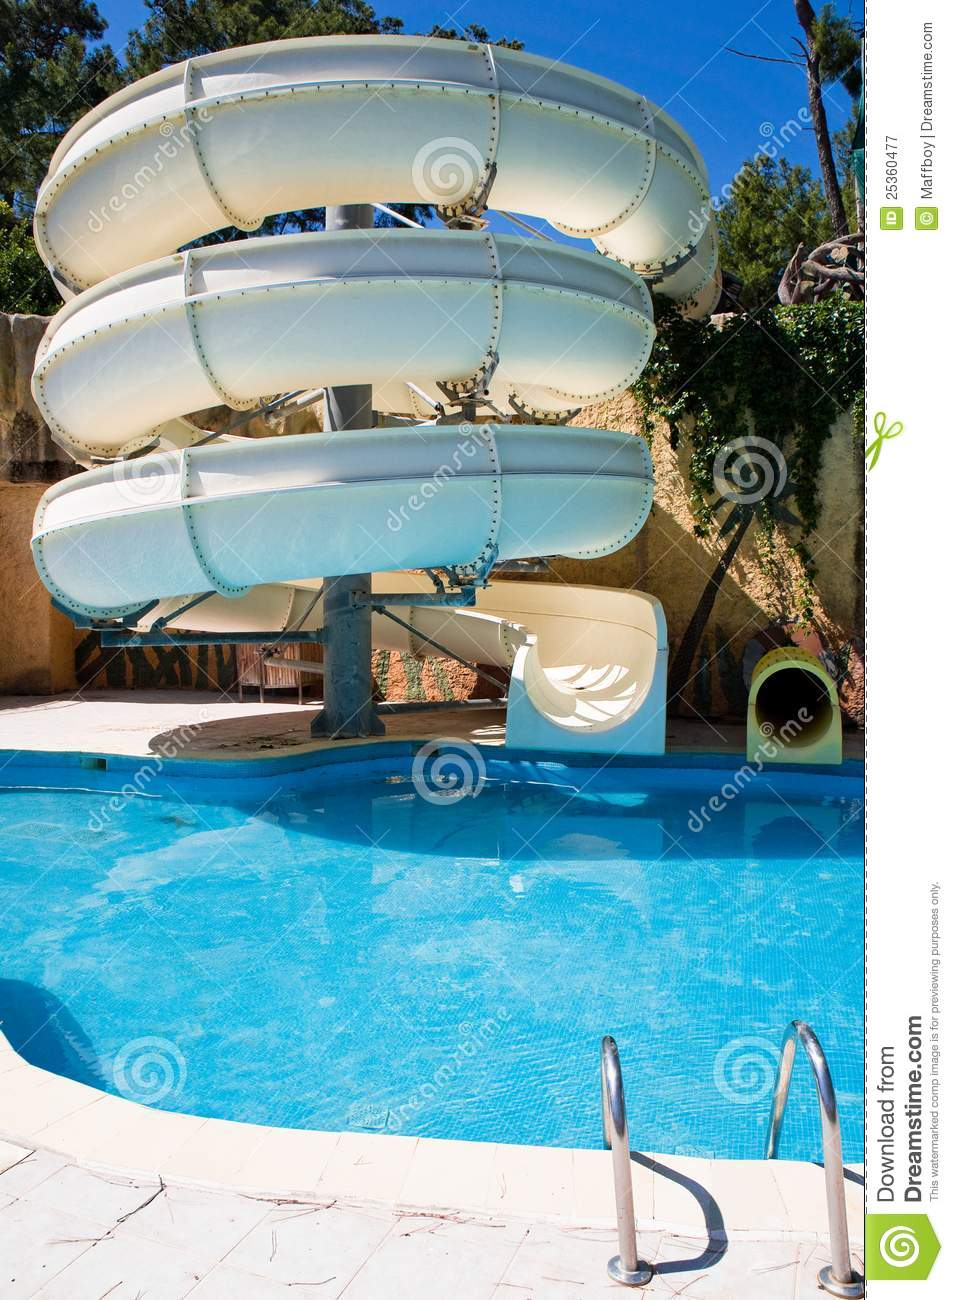 Swimming pool with water slide stock image image 25360477 - Playmobil swimming pool with waterslide ...